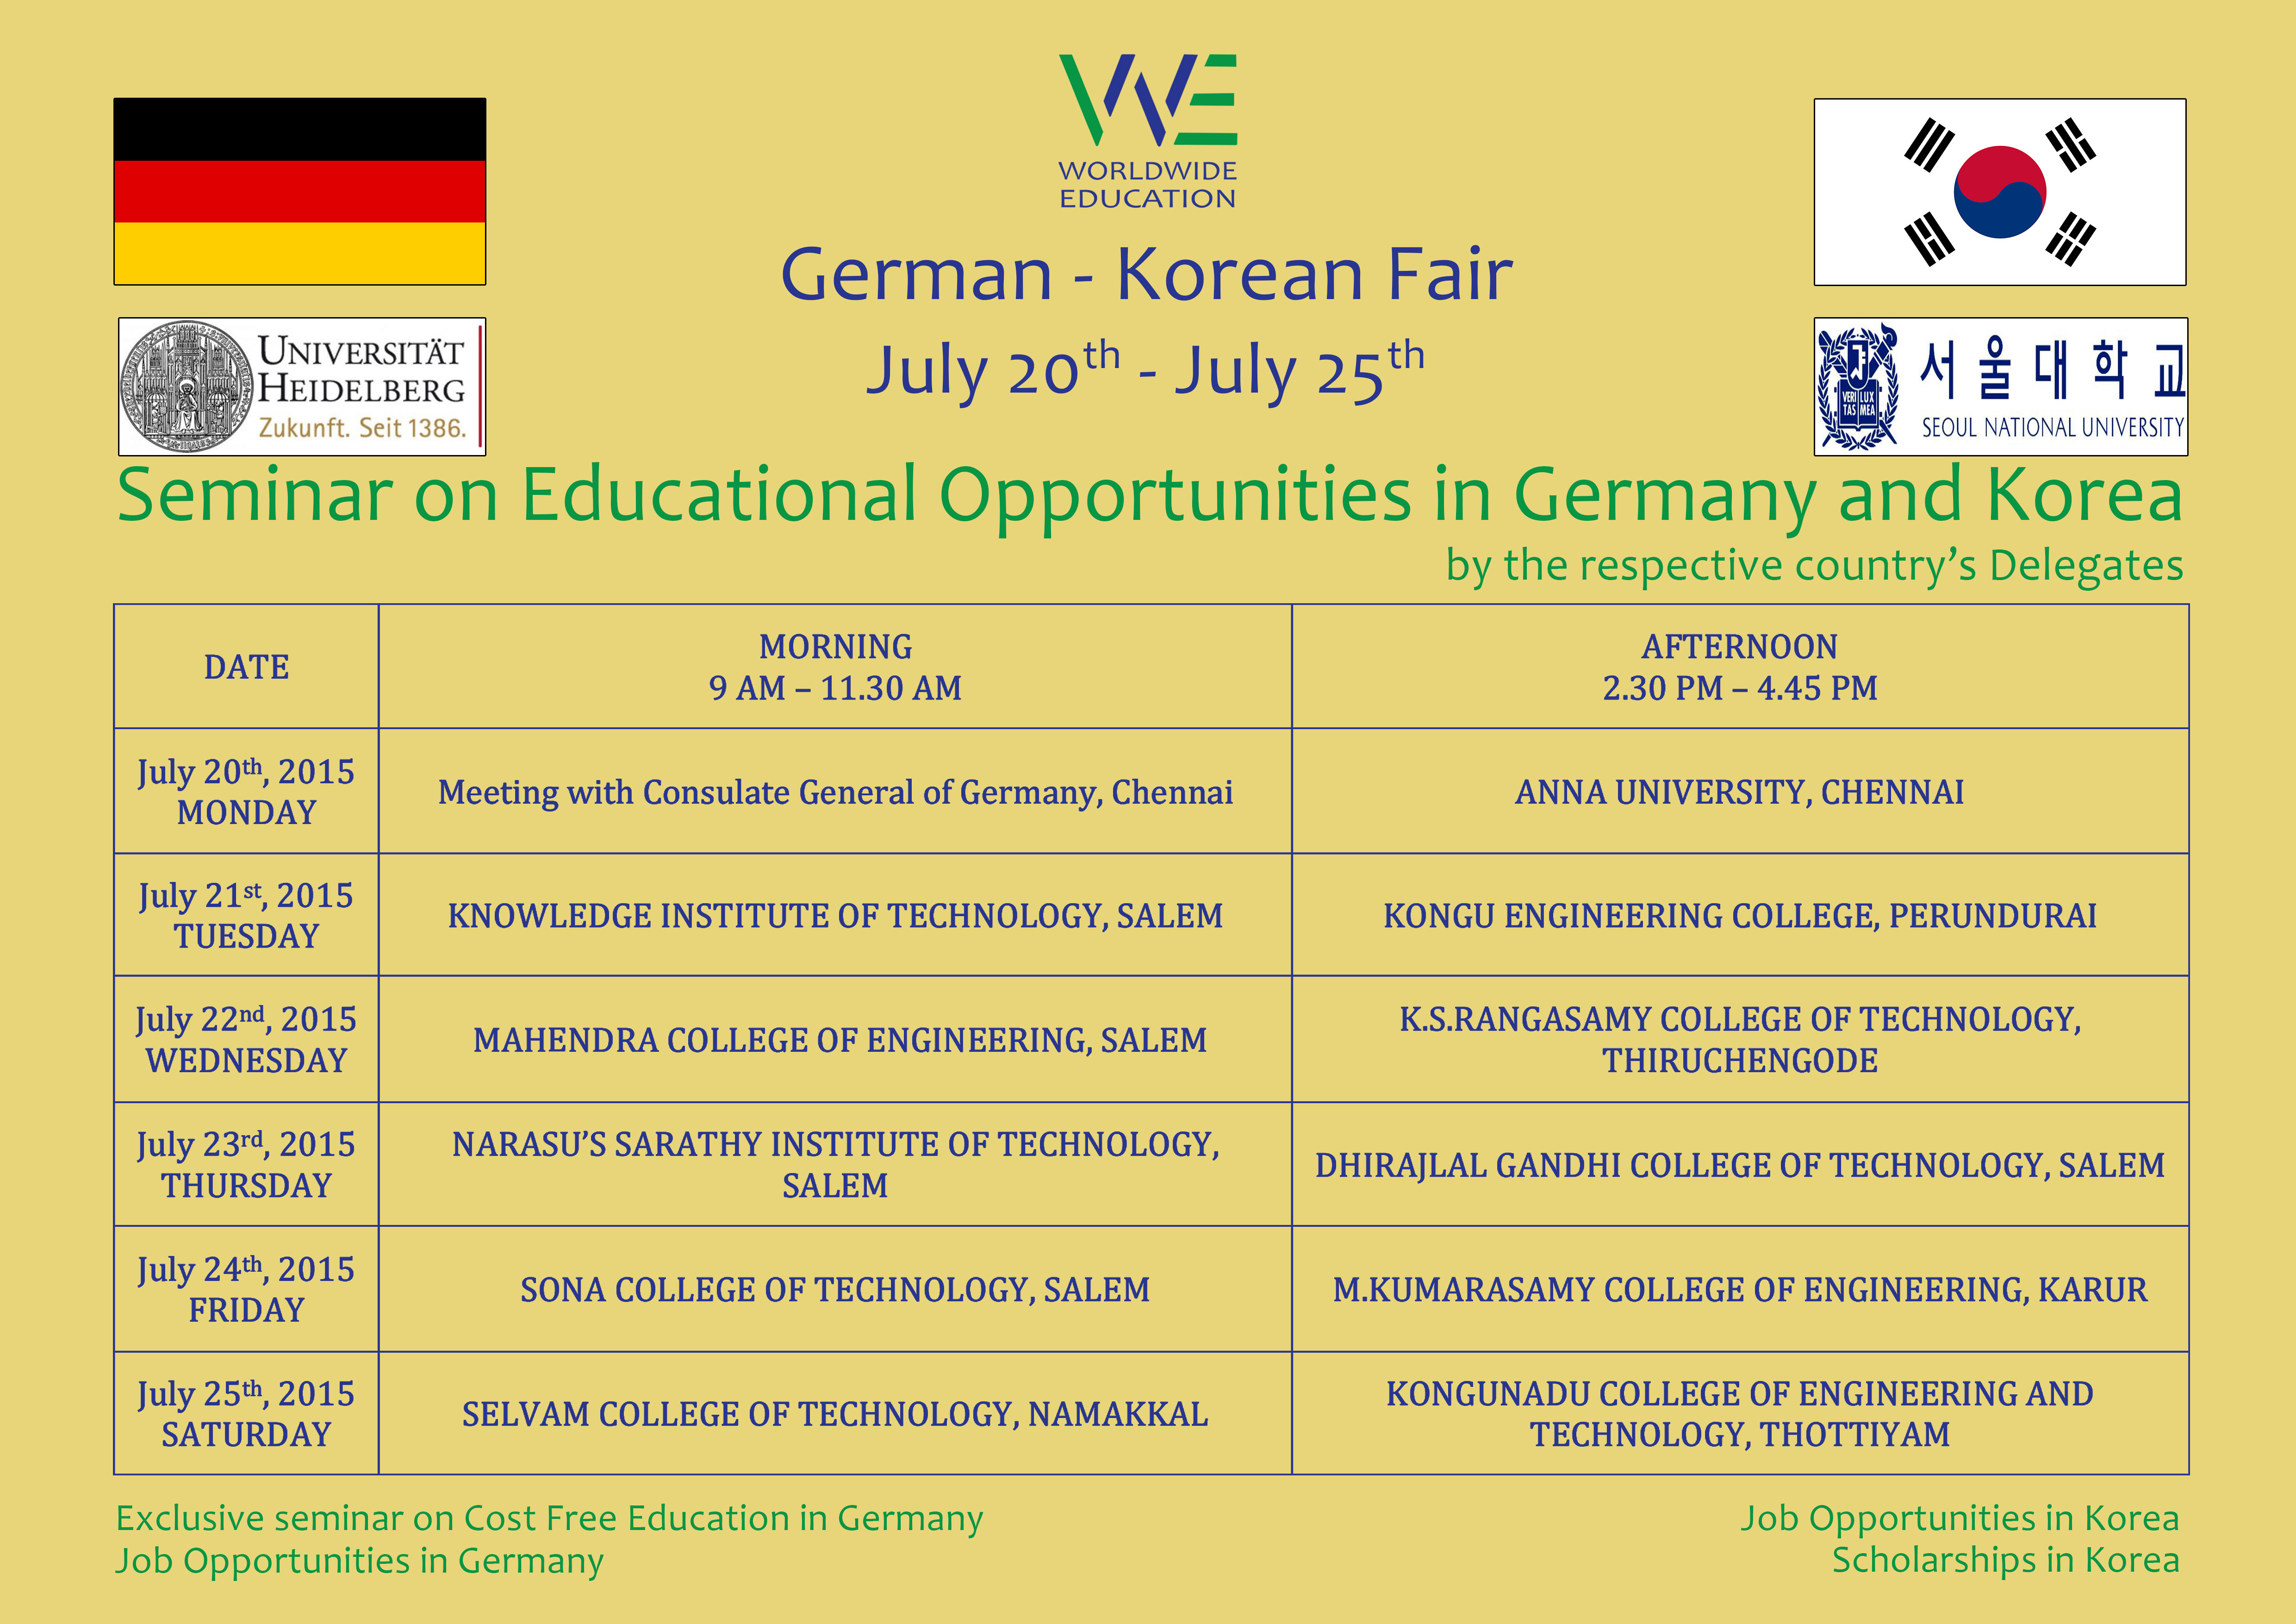 Seminar on Educational Opportunities in Germany and Korea